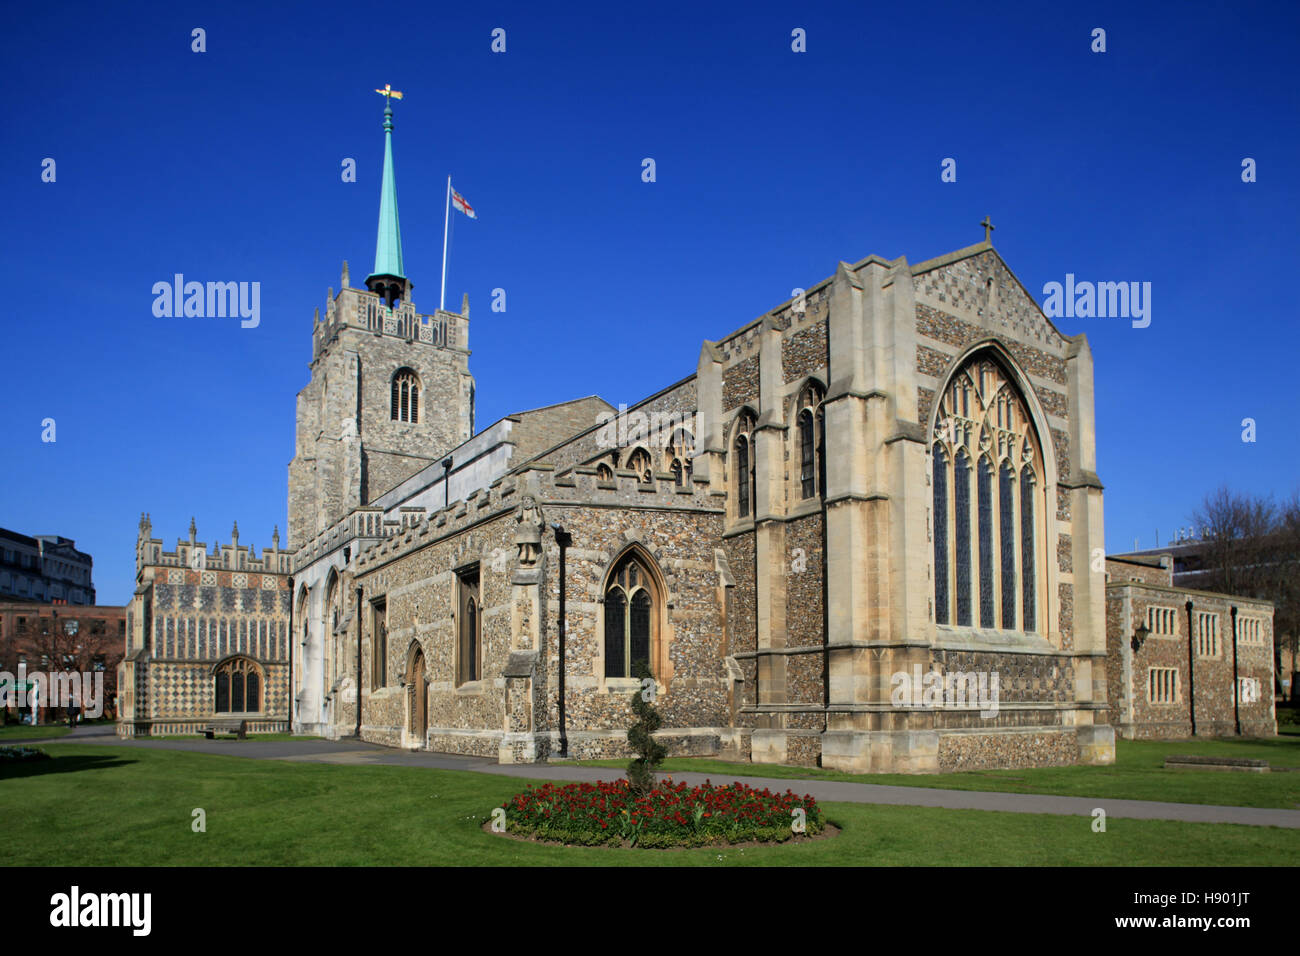 Chelmsford Cathedral, Chelmsford, Essex, England - Stock Image